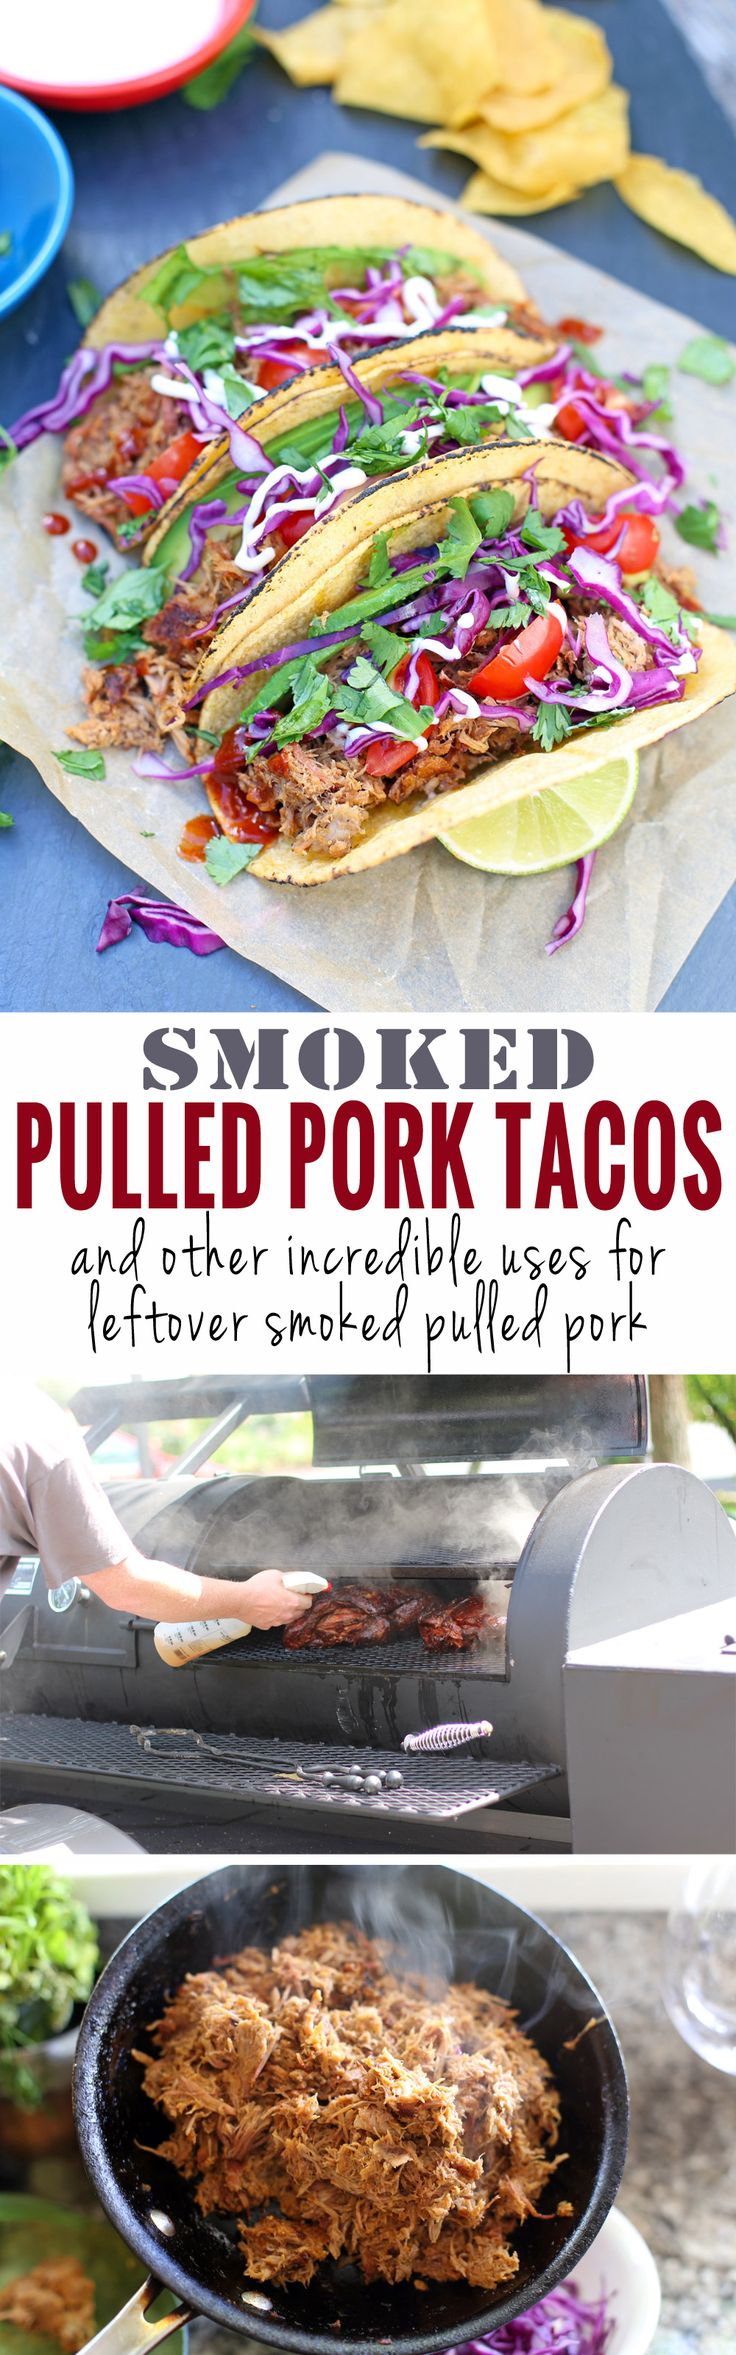 Smoked Pulled Pork Tacos, and other incredible uses for leftover pulled pork!